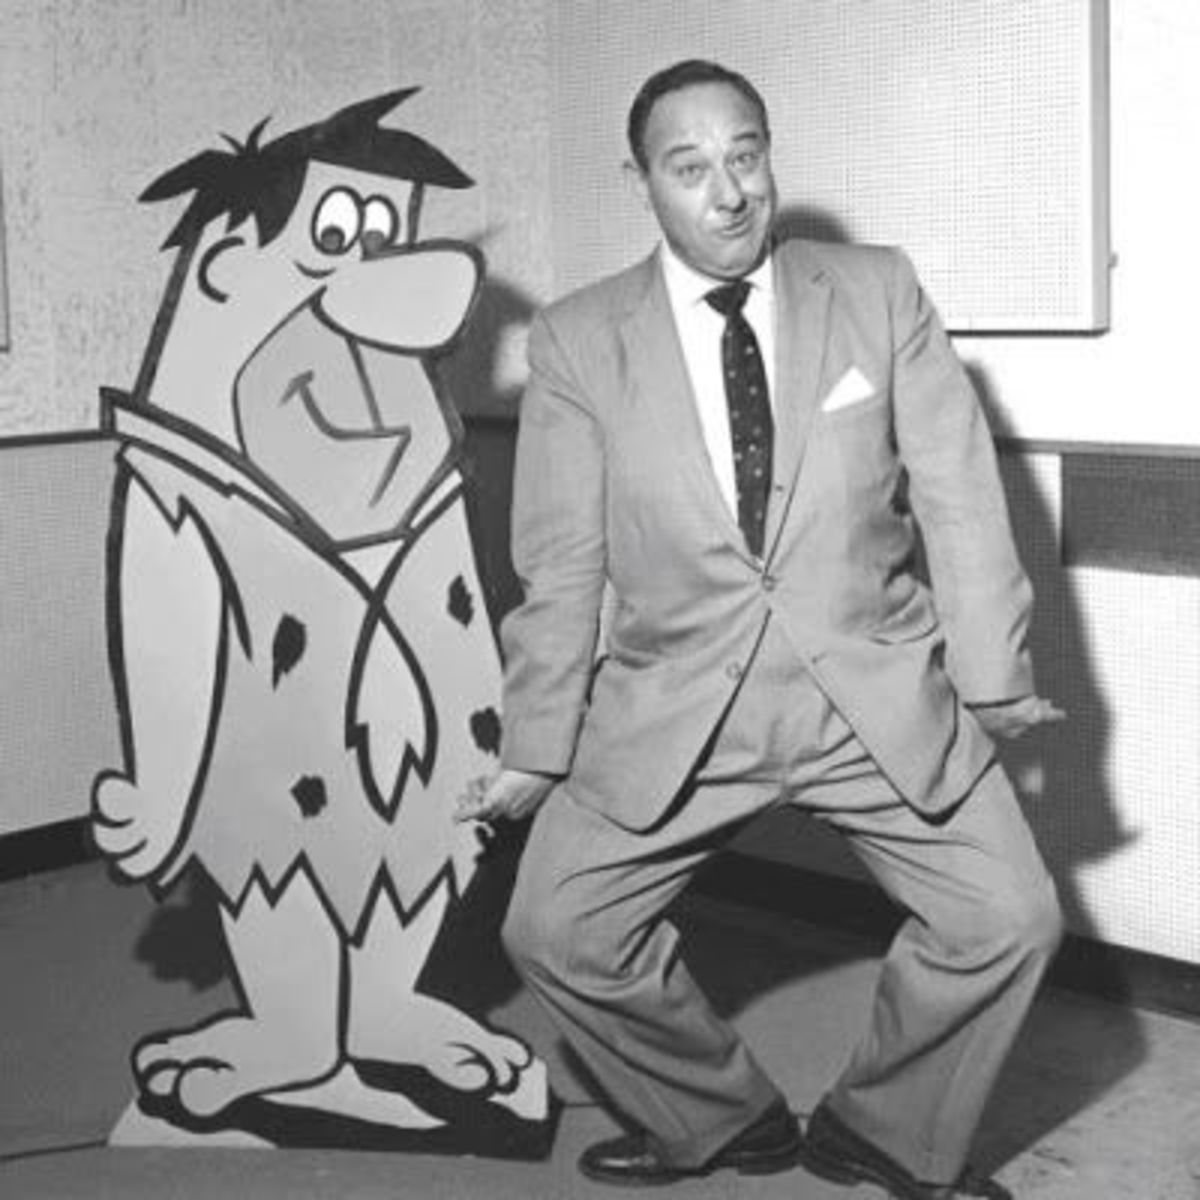 Fred Flintstone's voice actor Alan Scott